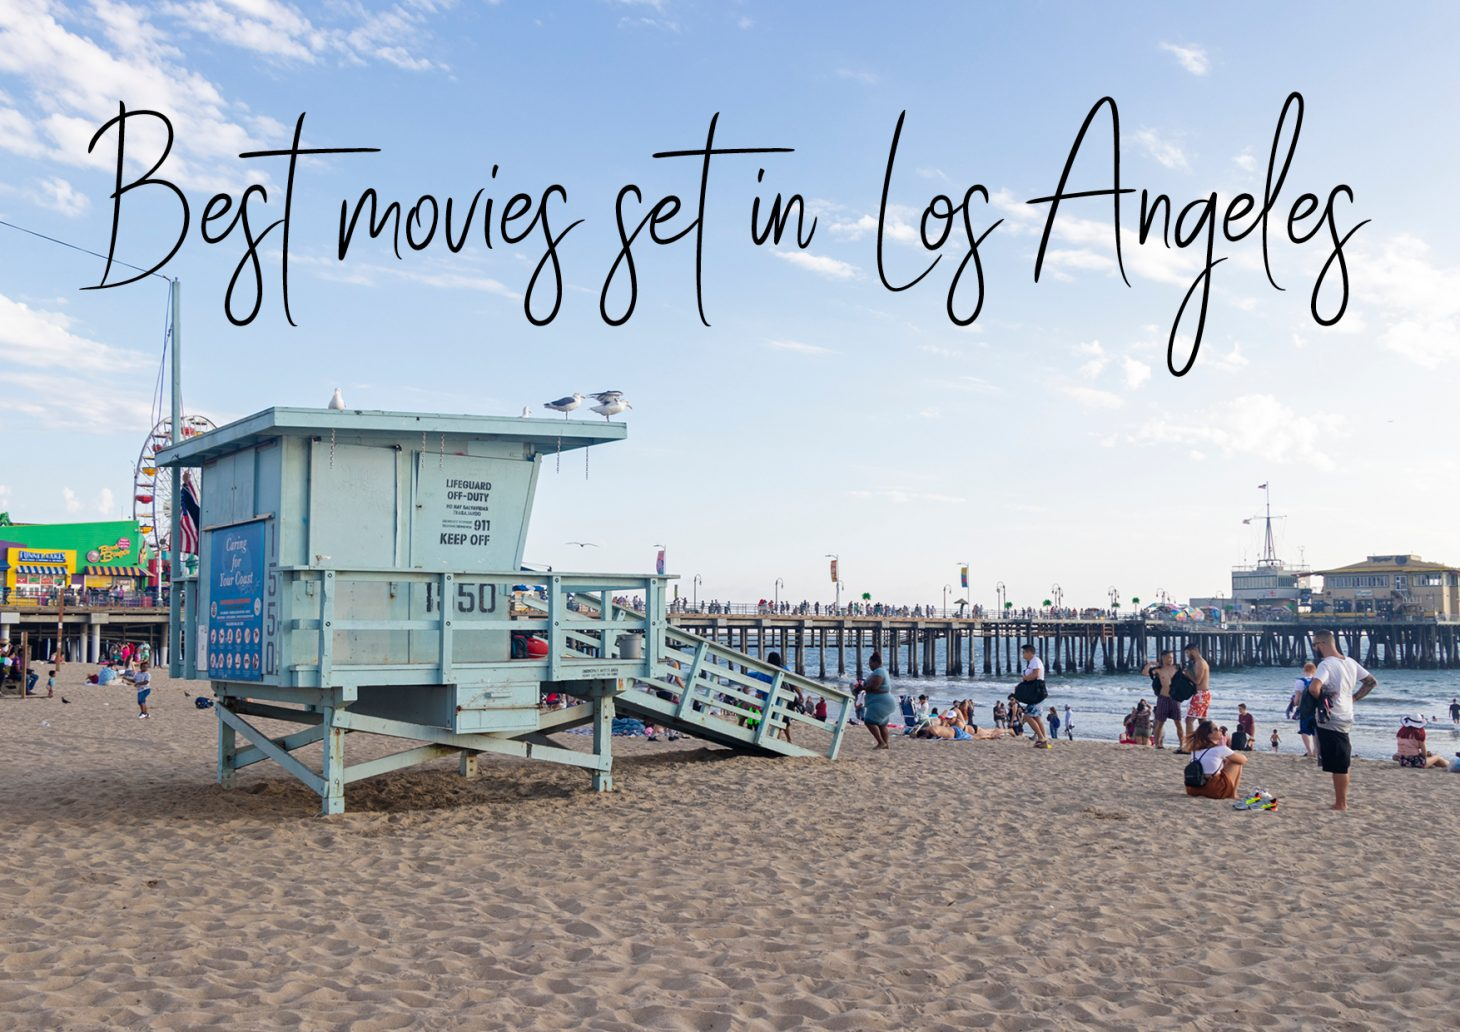 Best movies set in Los Angeles